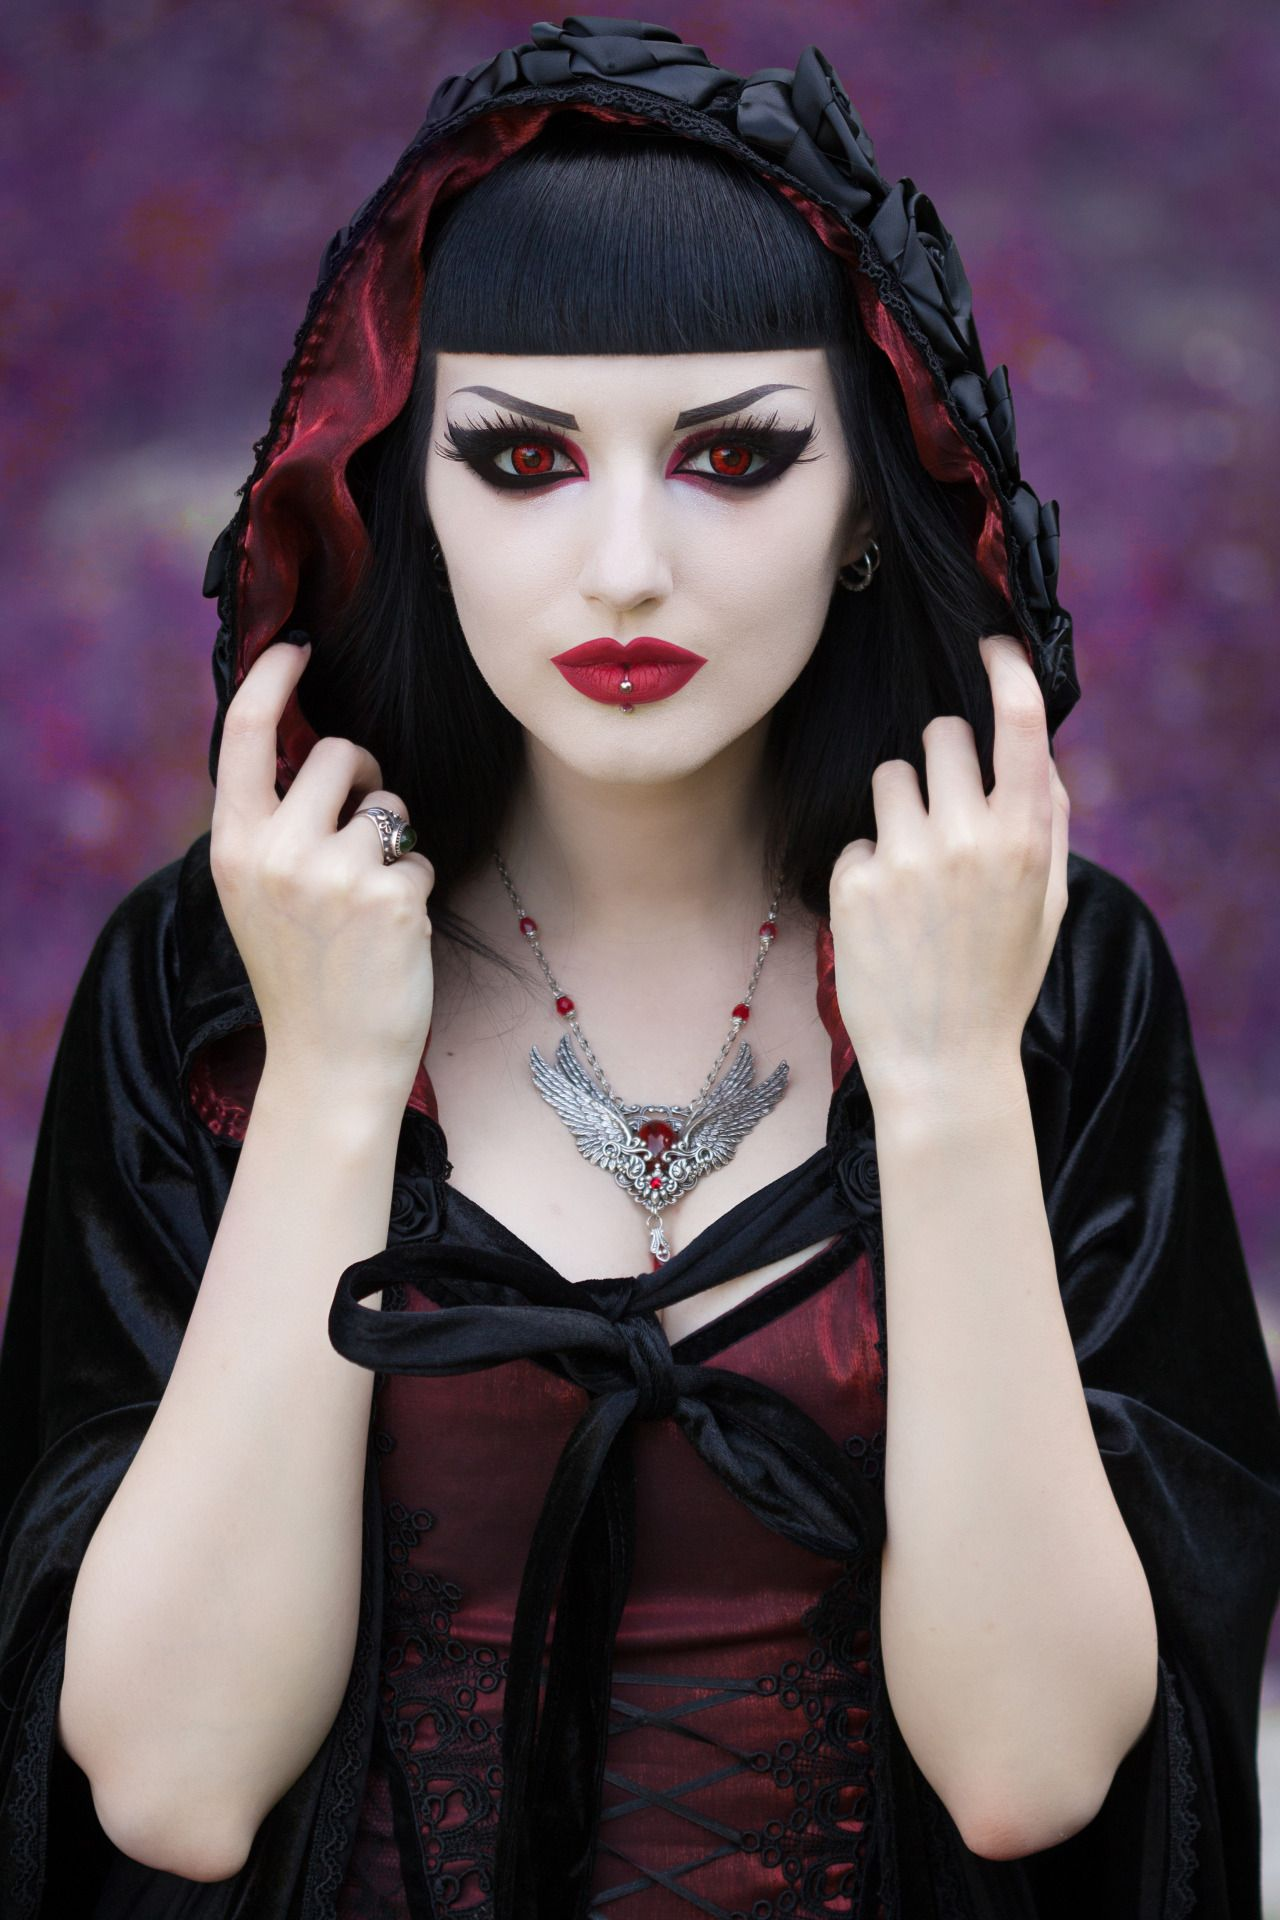 Model: Obsidian Kerttu Photo: John Wolfrik Clothes: Sinister - Jewellery: Nocturne Jewellery for Gothic and Amazing Magazine Make sure to get your digital or printed version...